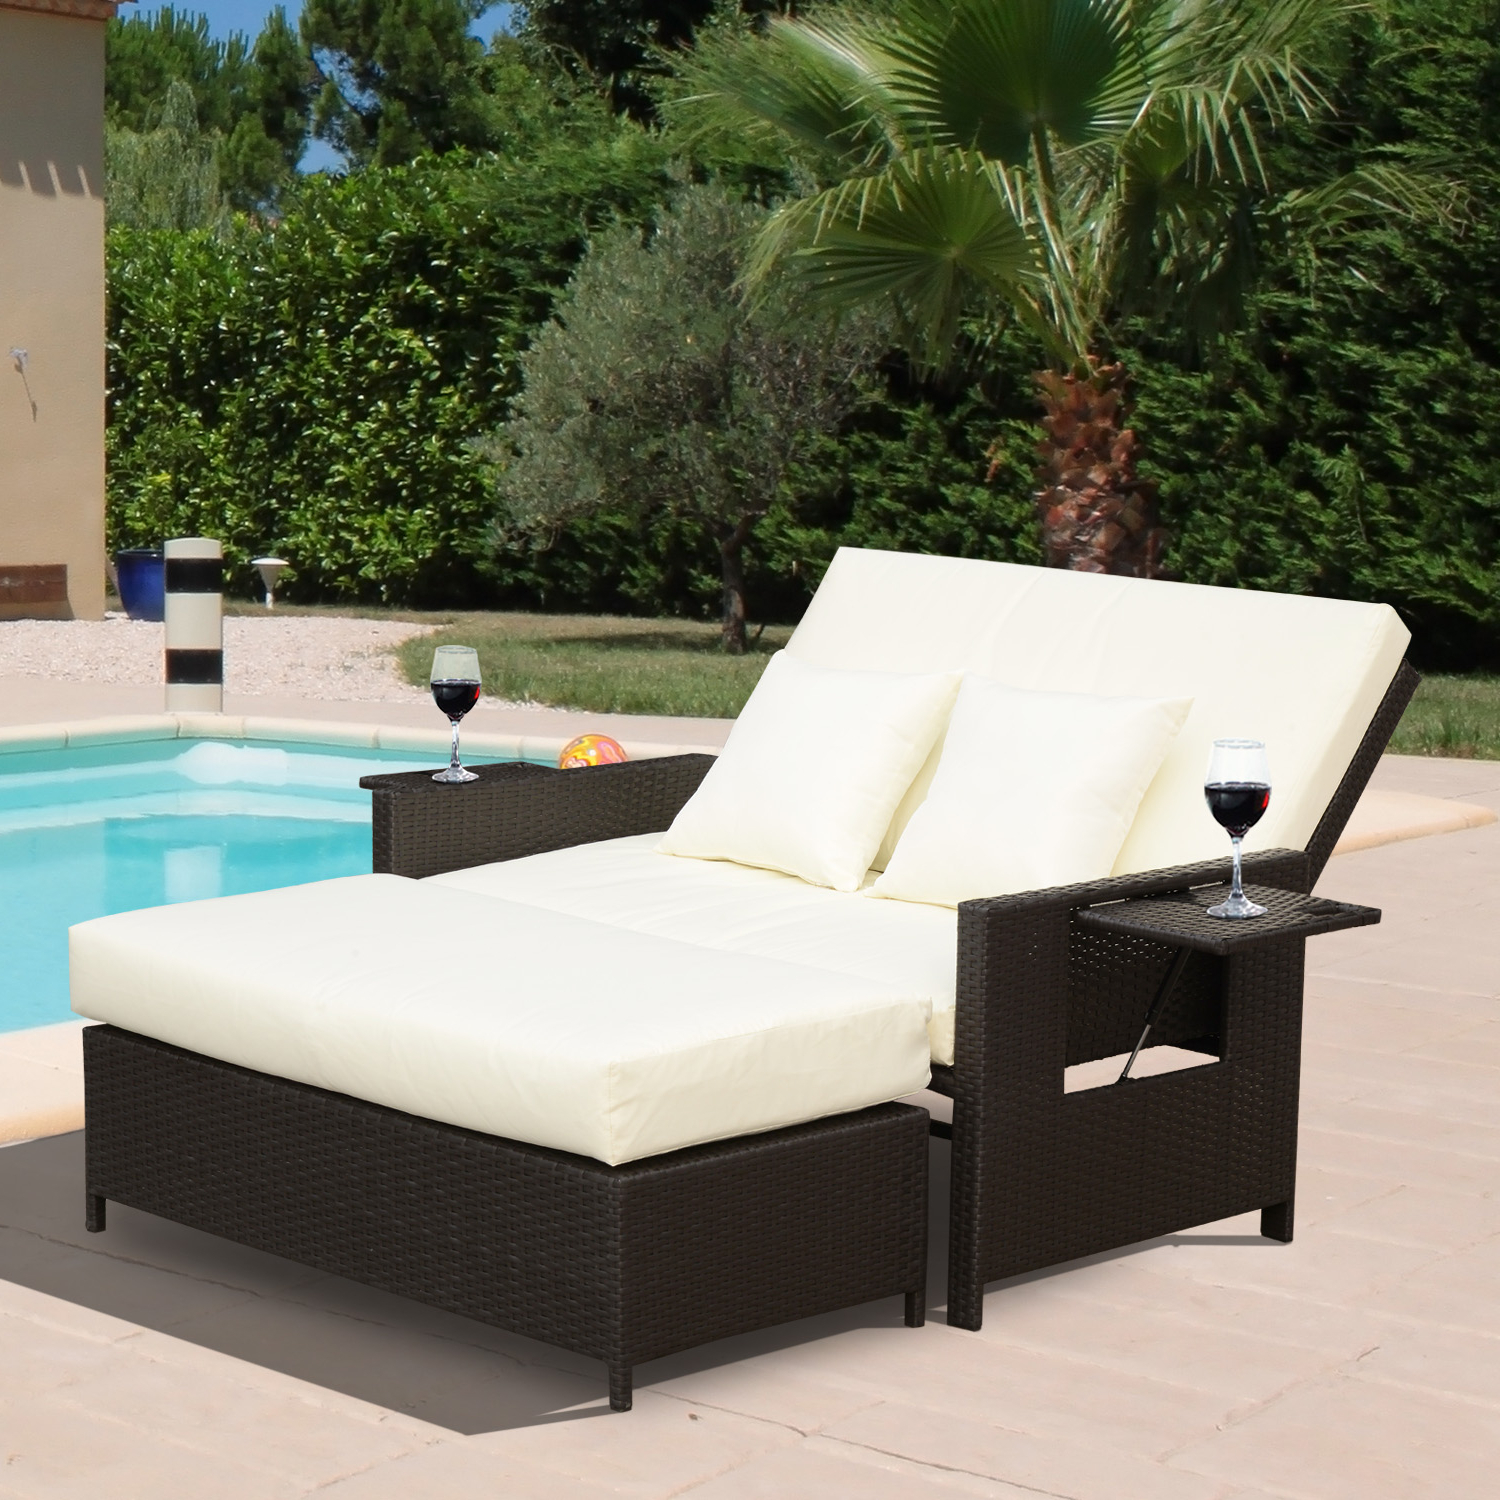 Well Known Outsunny 2 Piece Outdoor Rattan Wicker Chaise Lounge And Ottoman Set Cushioned With Regard To 2 Piece Outdoor Wicker Chaise Lounge Chairs (View 22 of 25)